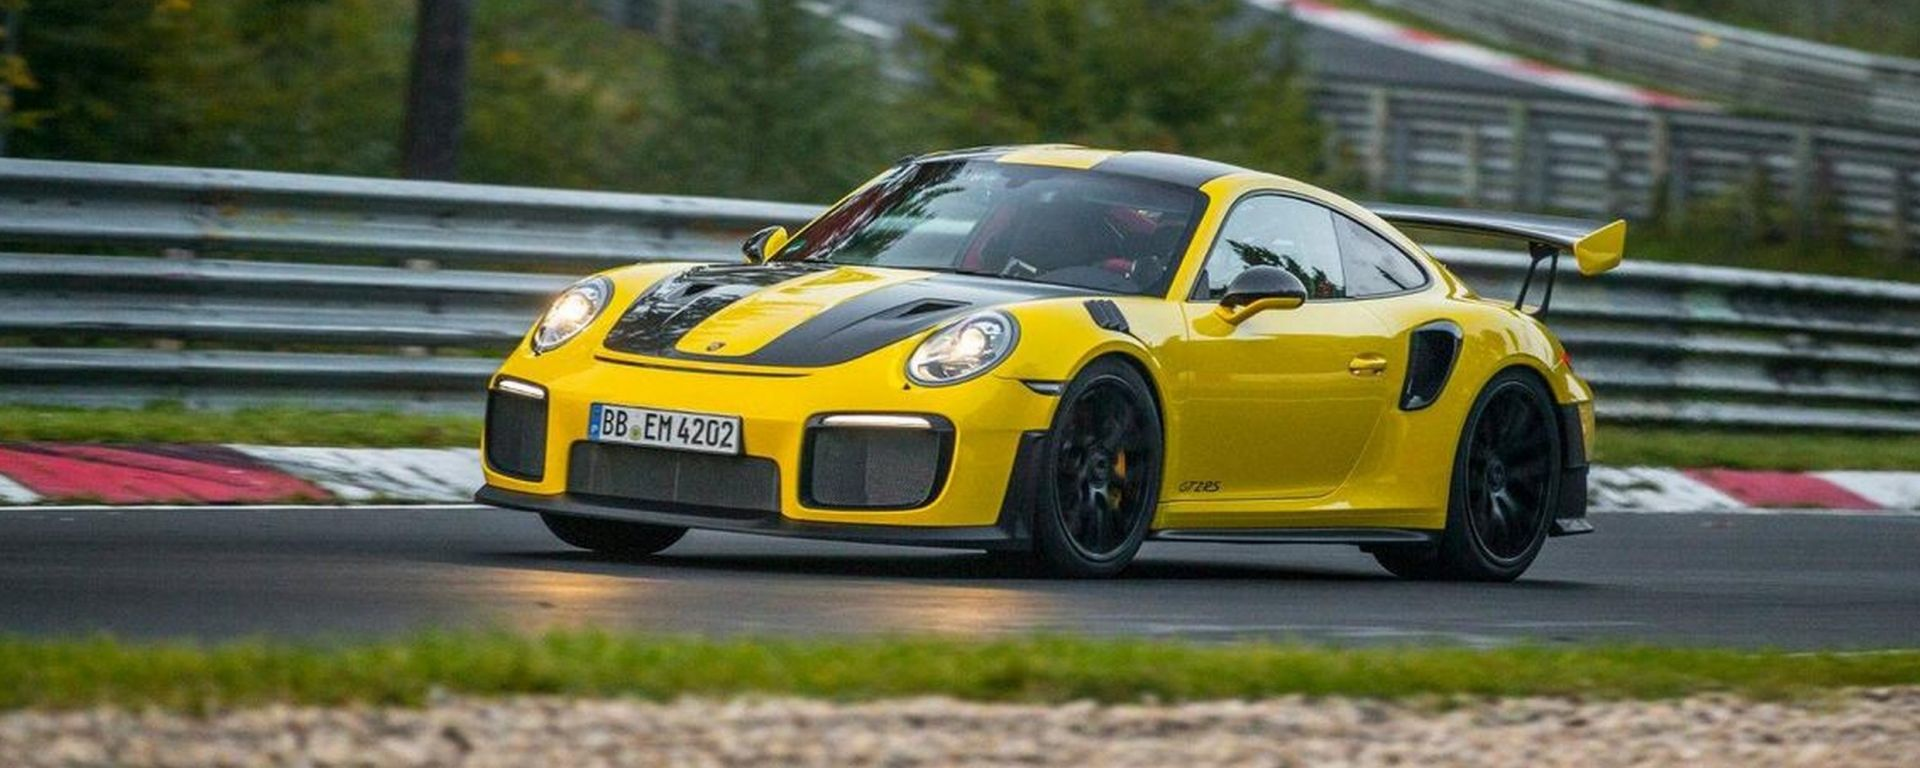 Porsche 911 GT2 RS: record al Ring, battute 918 e Huracan